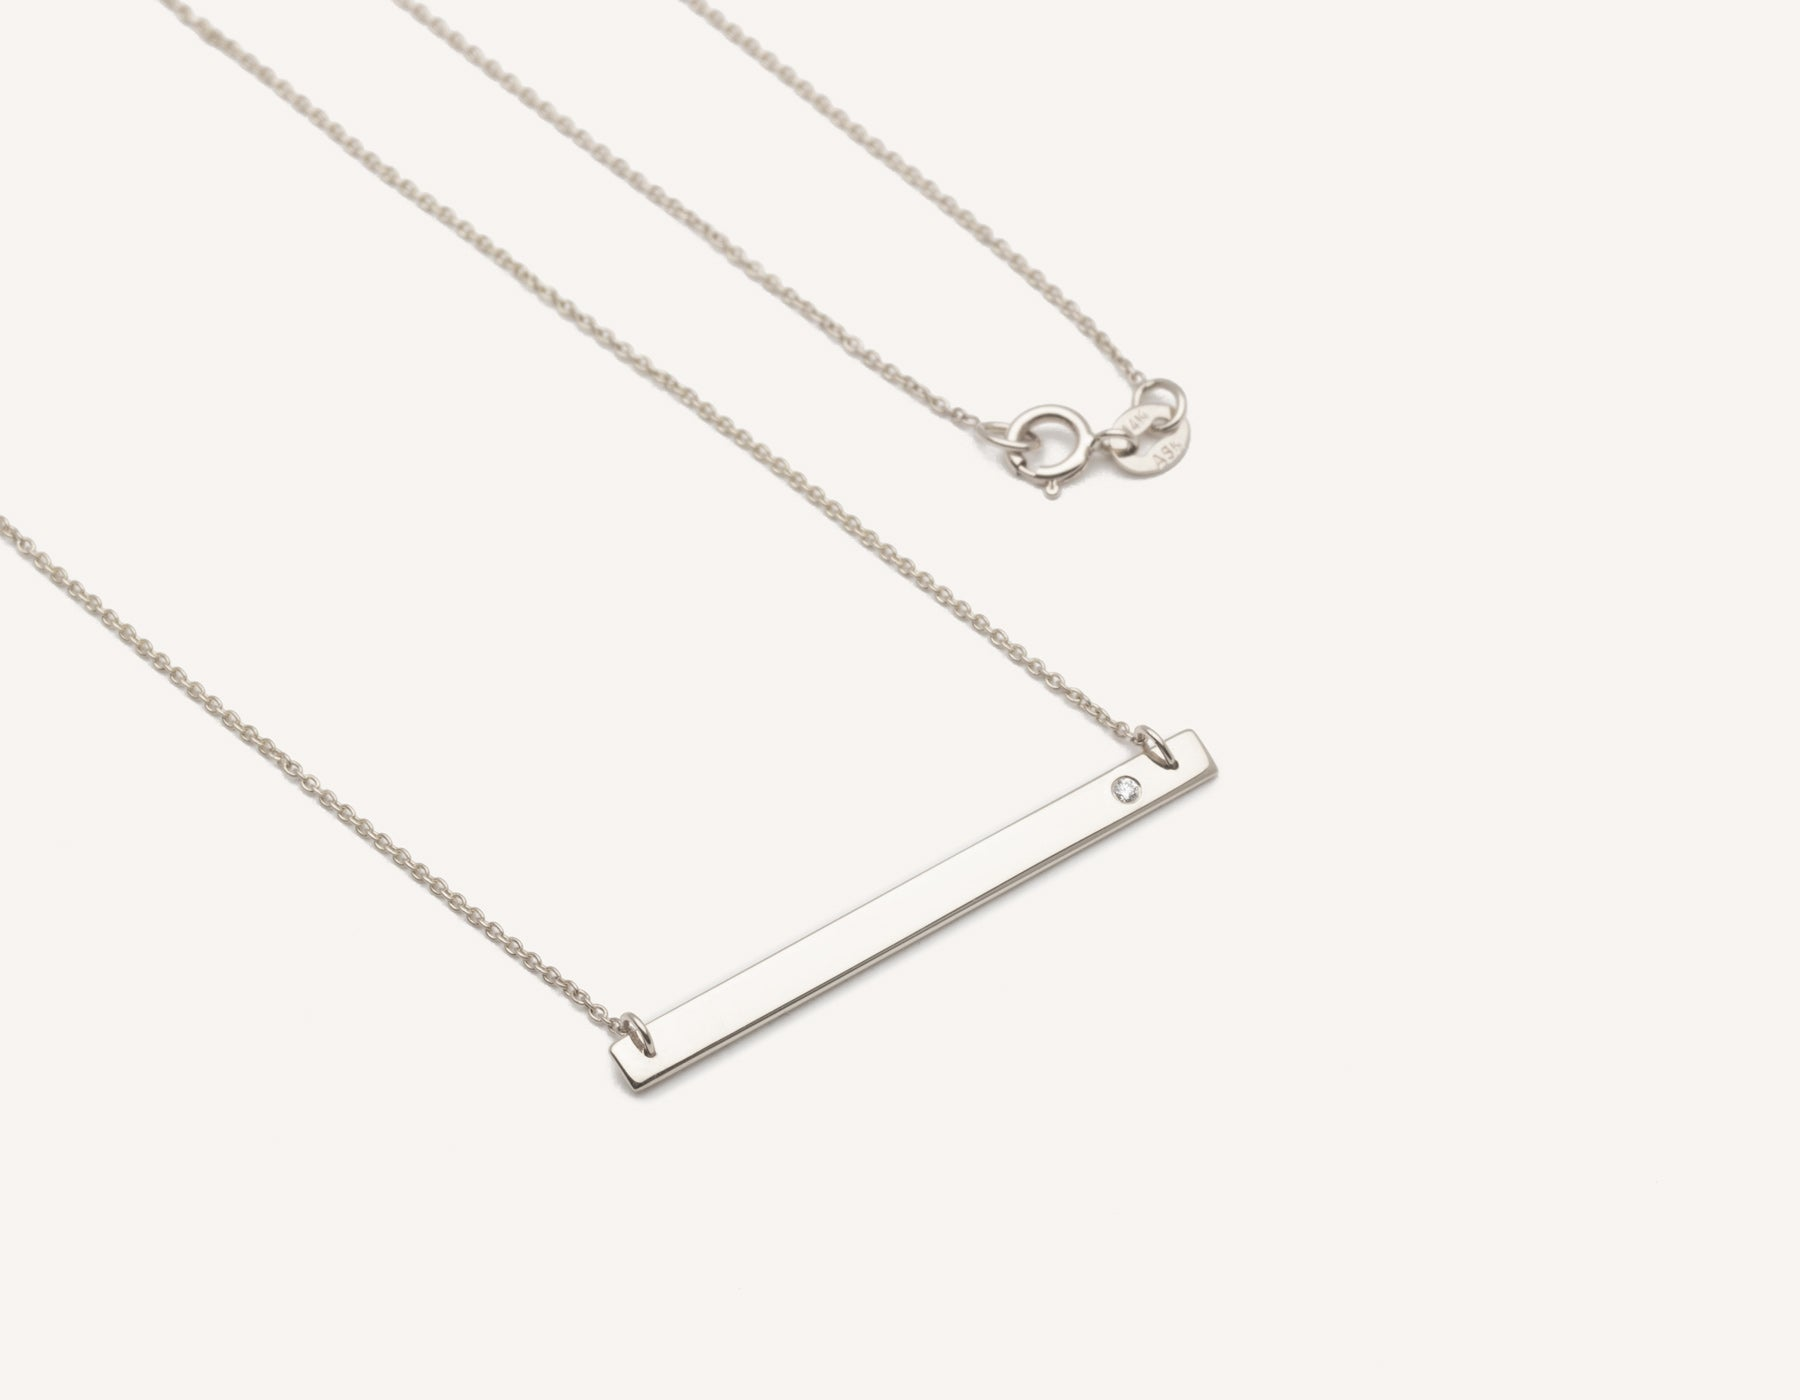 Simple personalized engraving 14k solid gold Bar Necklace with Diamond on minimalist chain by Vrai & Oro sustainable jewelry, 14K White Gold